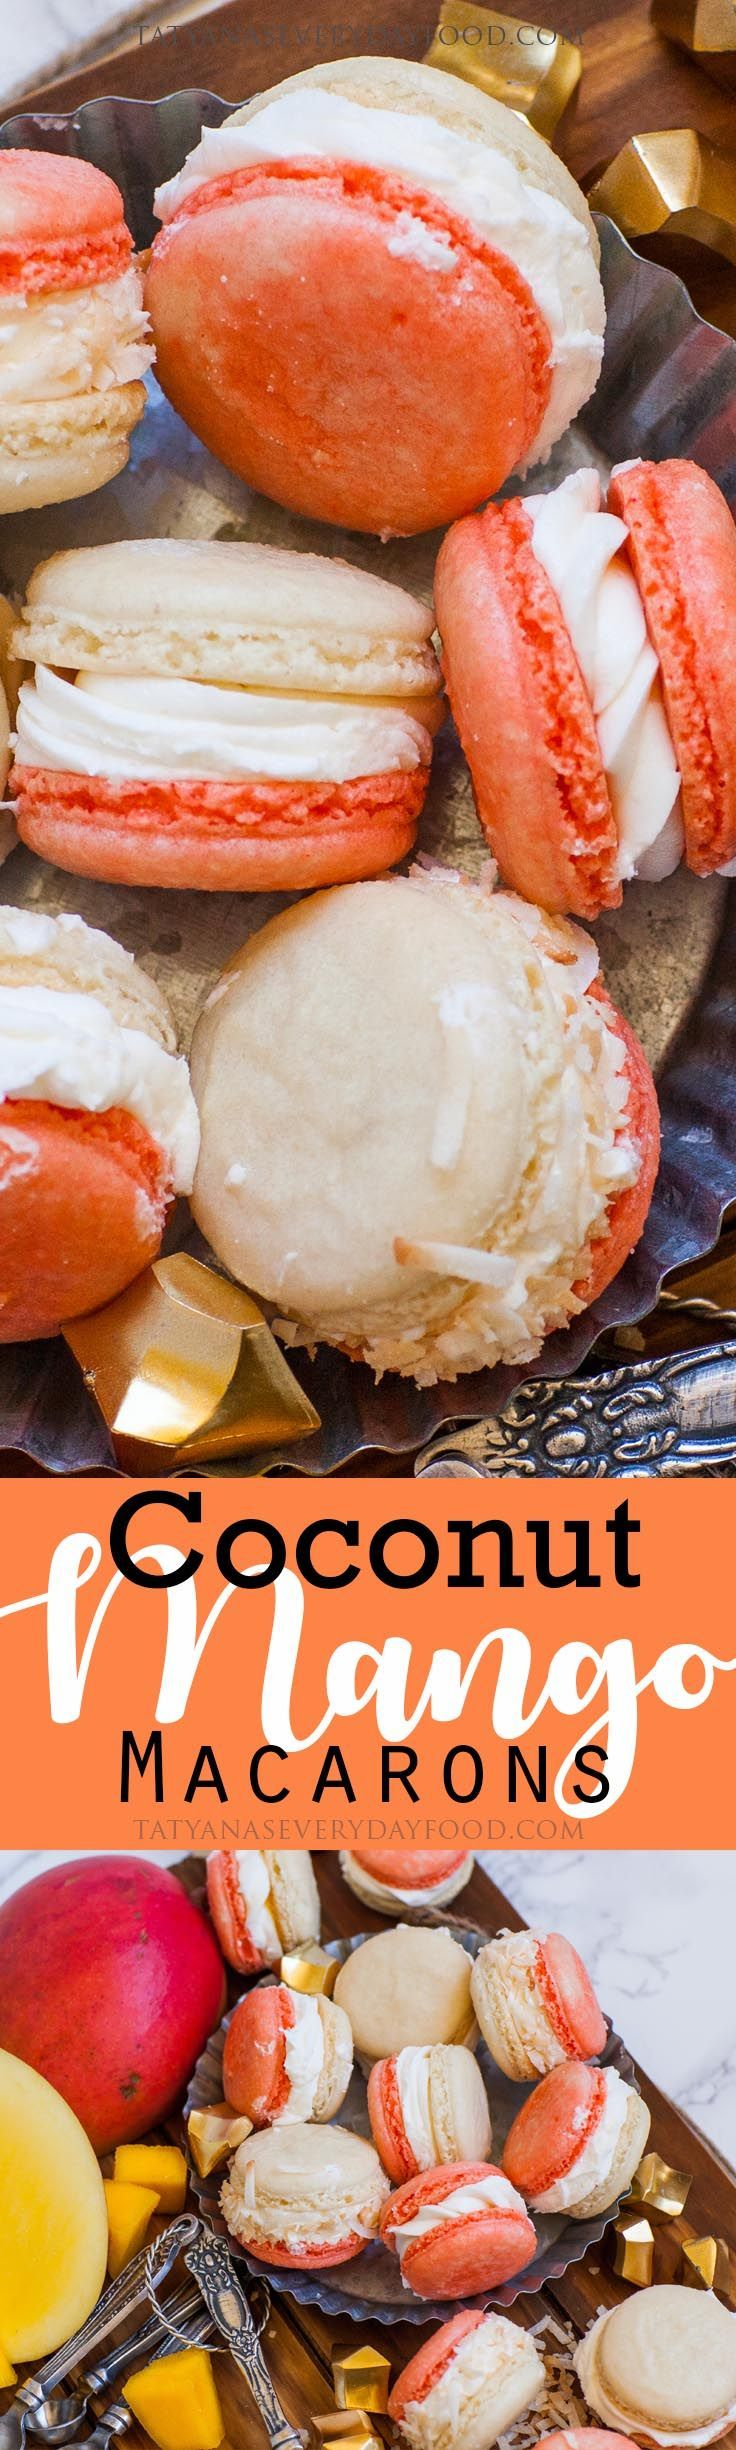 Summer is finally upon us and these macarons are a great way to kick off the season. Every bite of these 'coconut mango macarons' is filled with tropical flavor. Made with coconut buttercream, coconut almond cookies and filled with mango puree! The perfect summer-time treat! Watch my video recipe for all the details! Love this […]